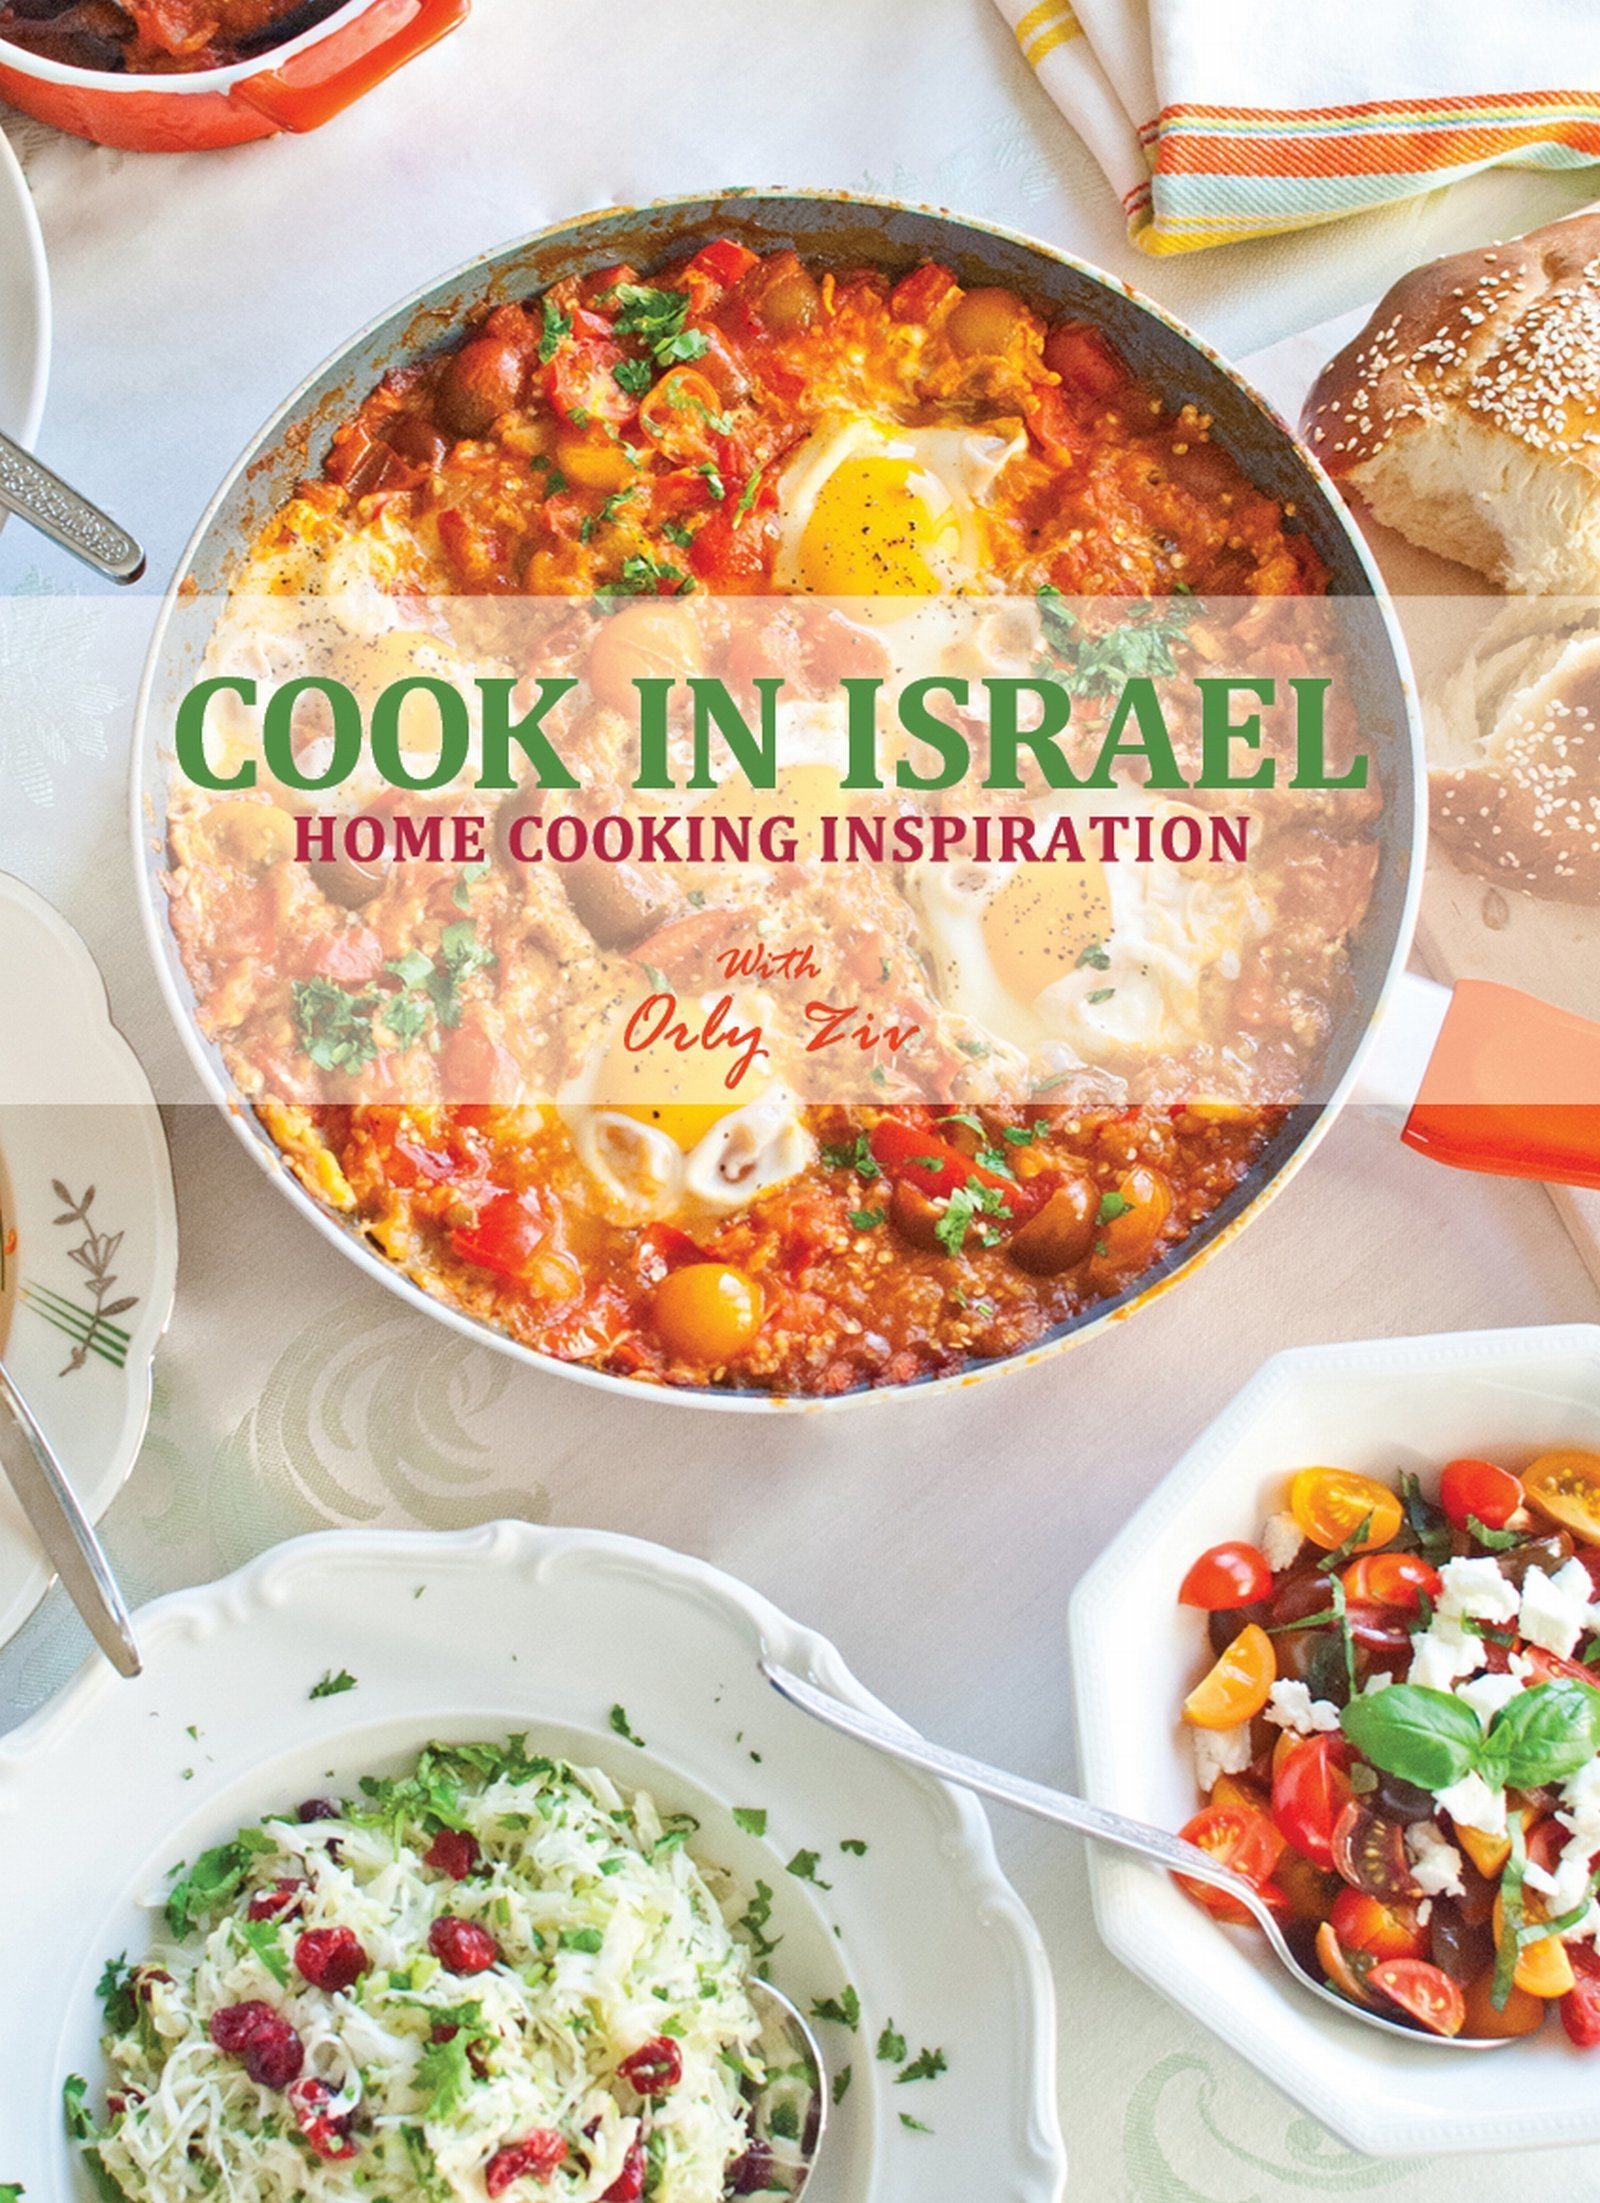 October, 2017: Cooking in Israel (Orly Ziv)